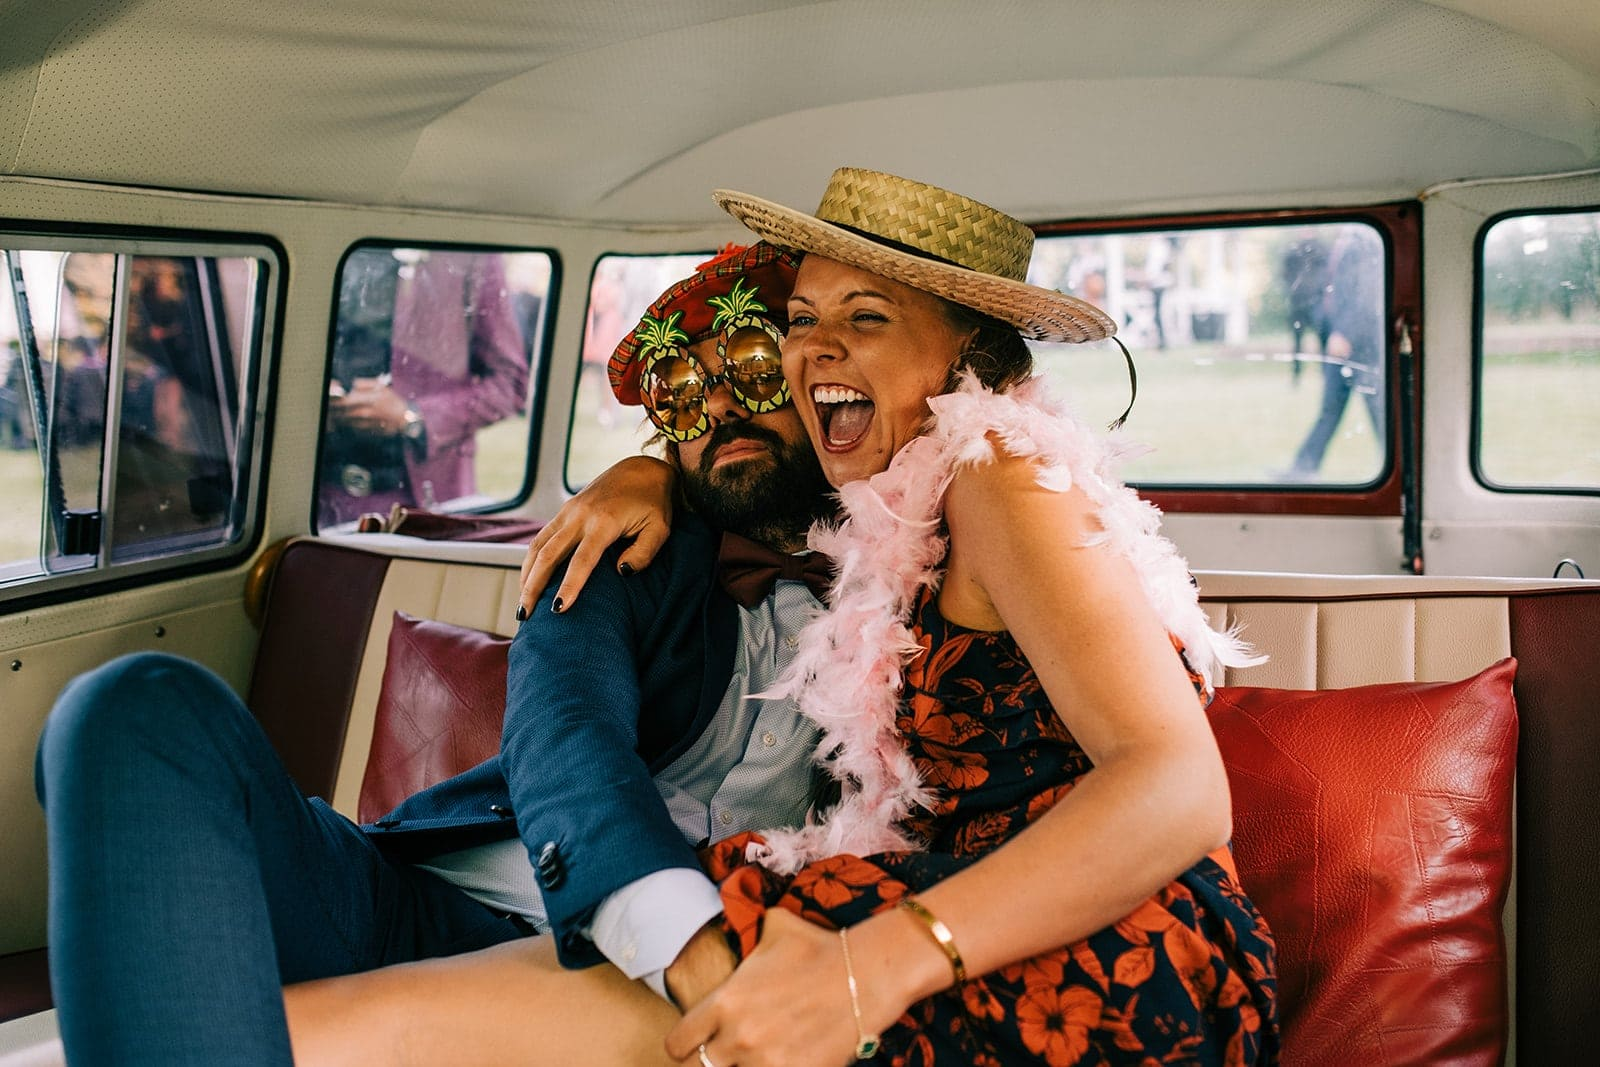 Guests having fun in the Camper Van photobooth